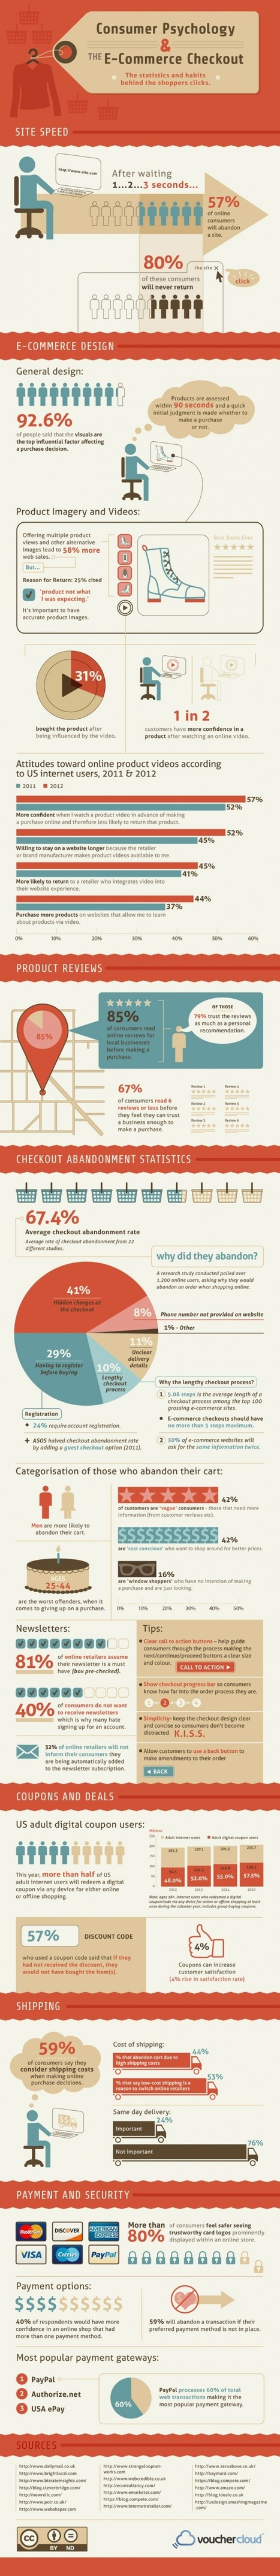 Improving Online Sales: What Leads to Checkout Abandonment? #Infographic | Marketing Education | Scoop.it